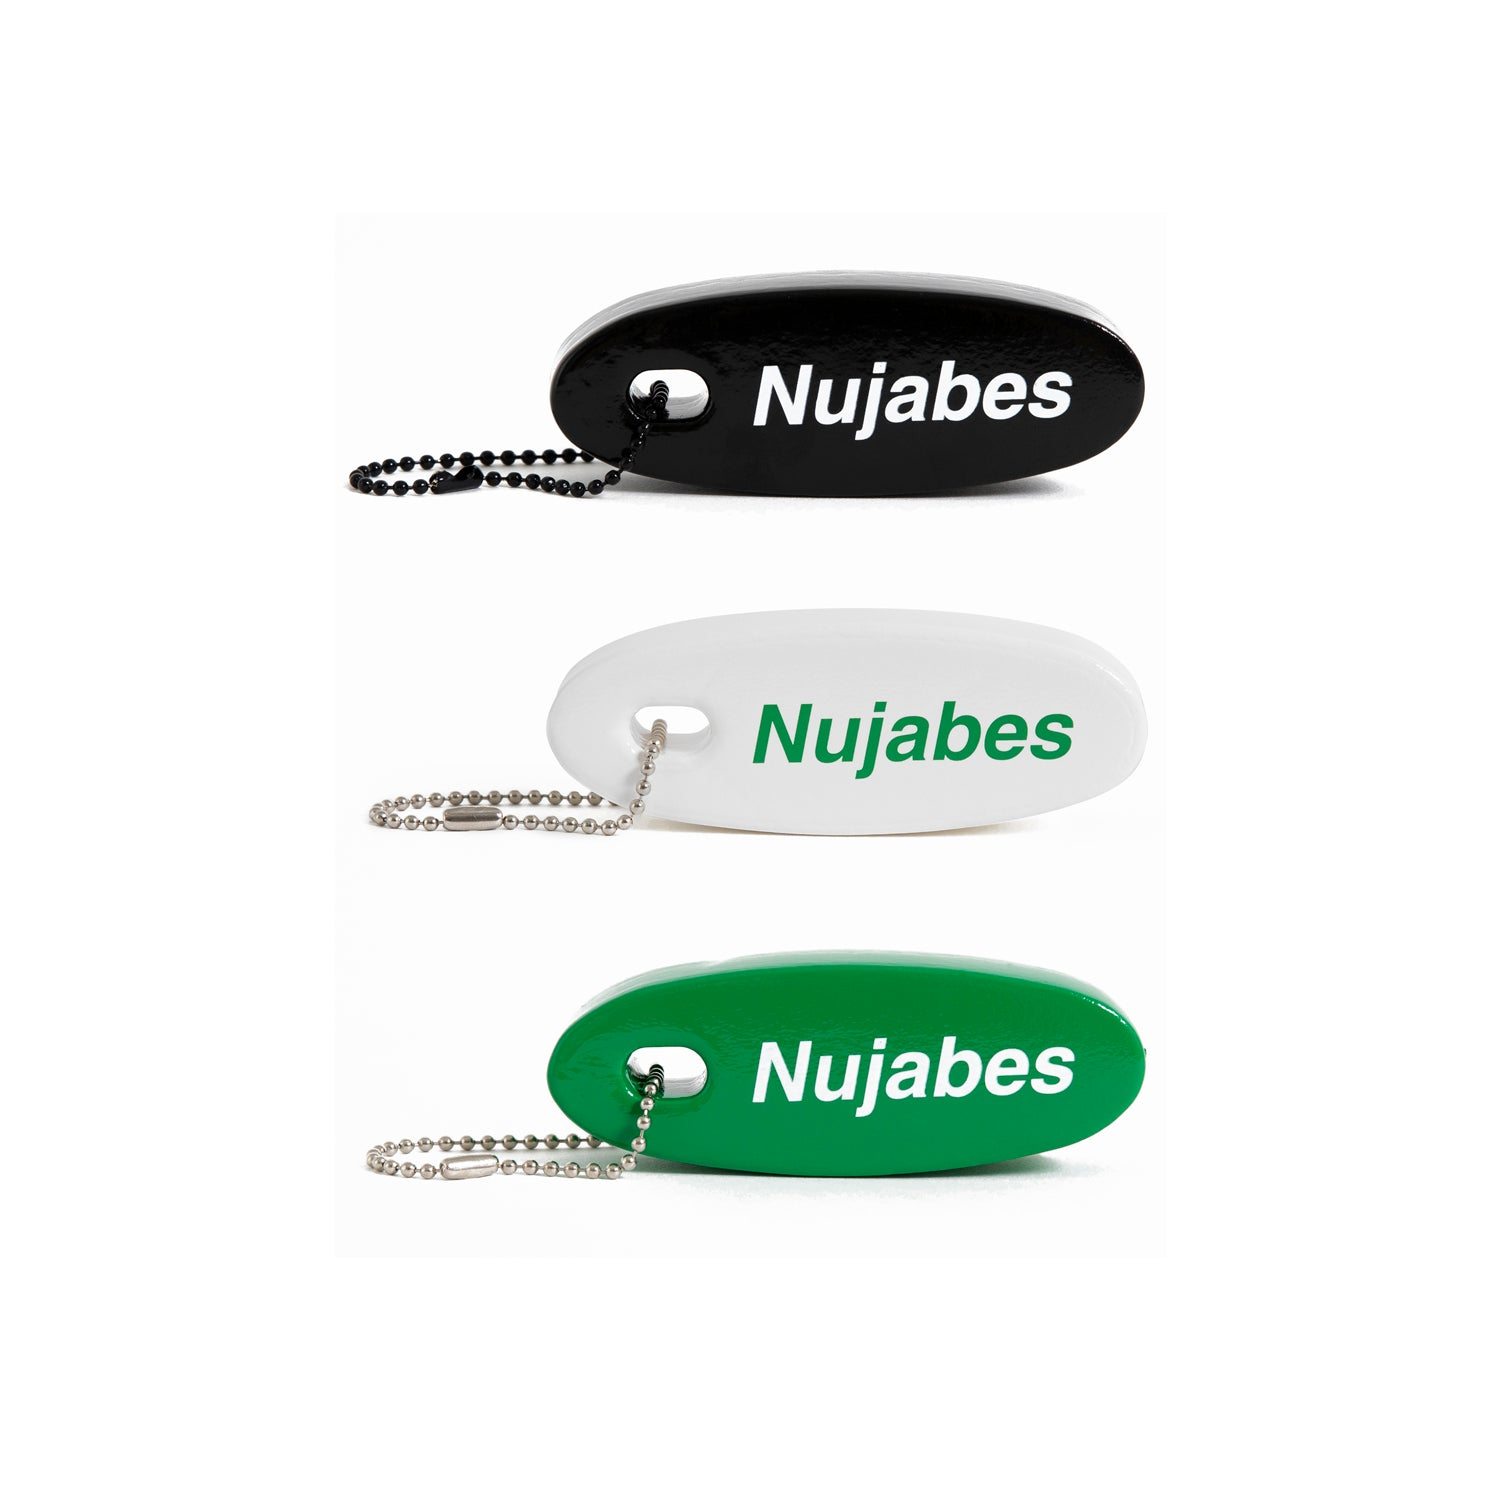 Nujabes Key Chain